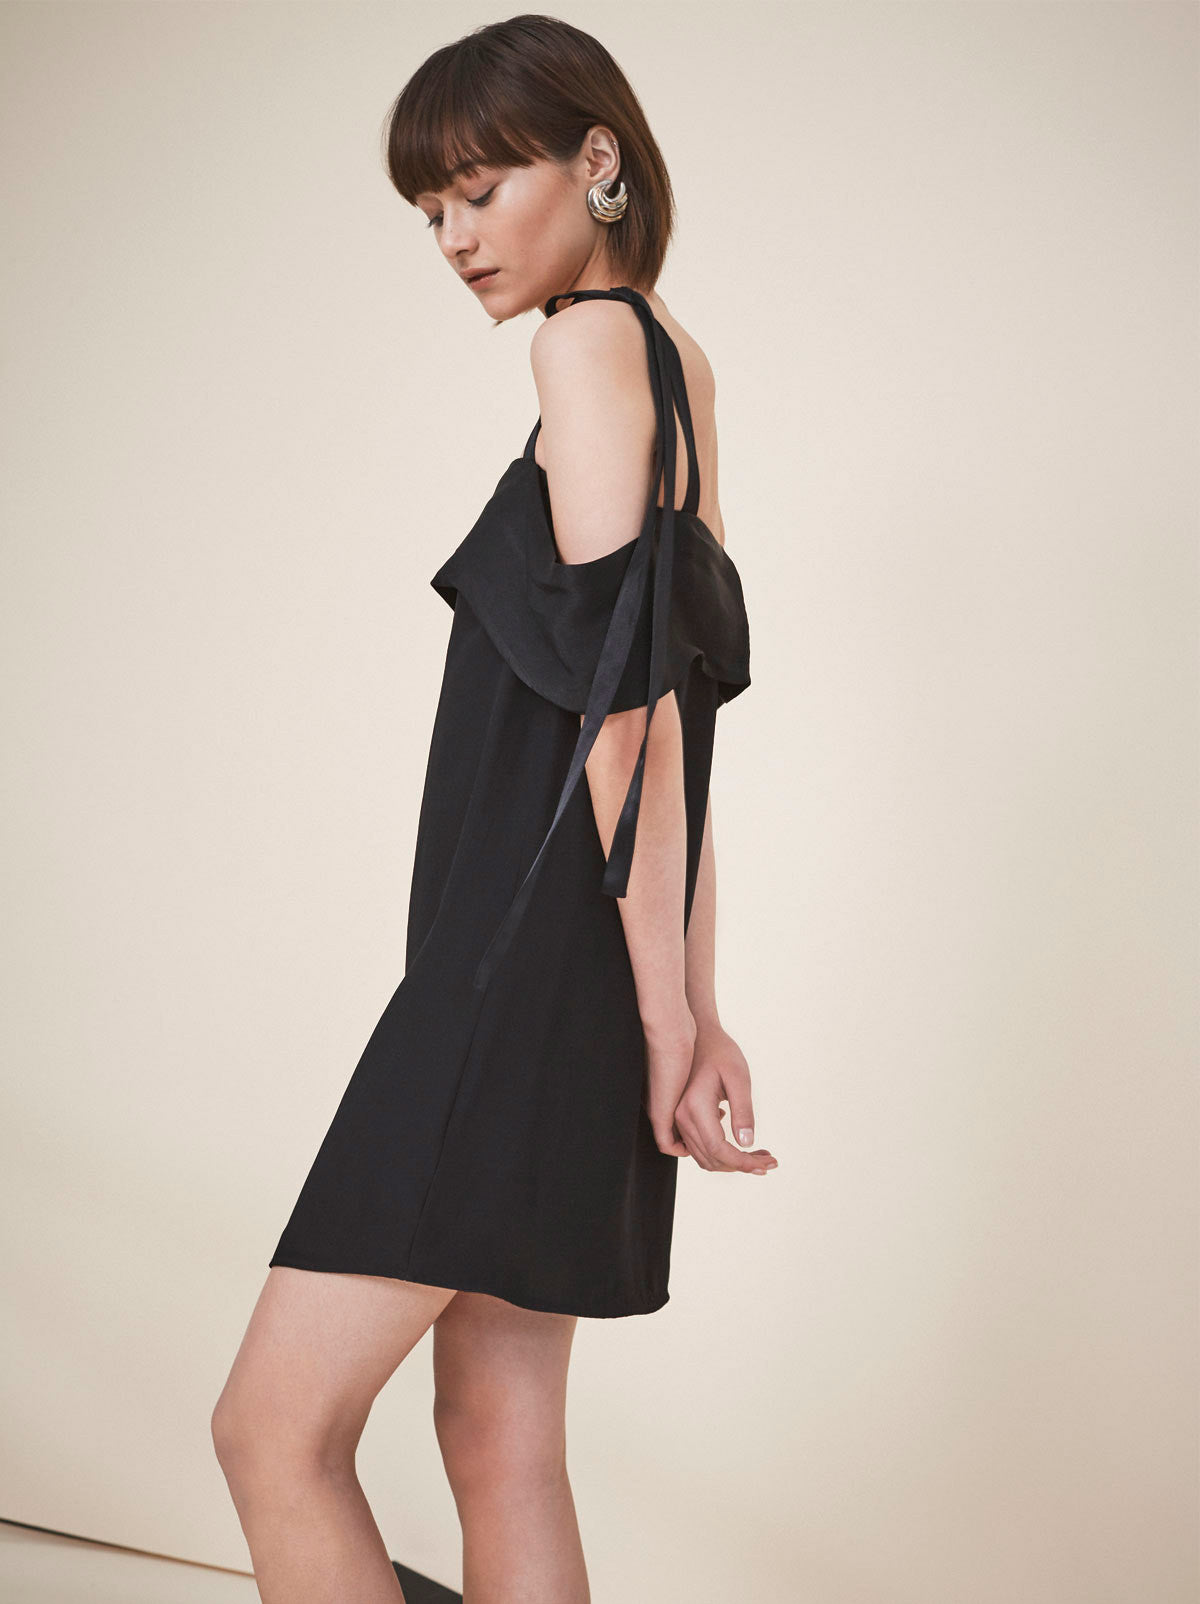 Gala Black Cold Shoulder Cocktail Slip Dress by KITRI Studio